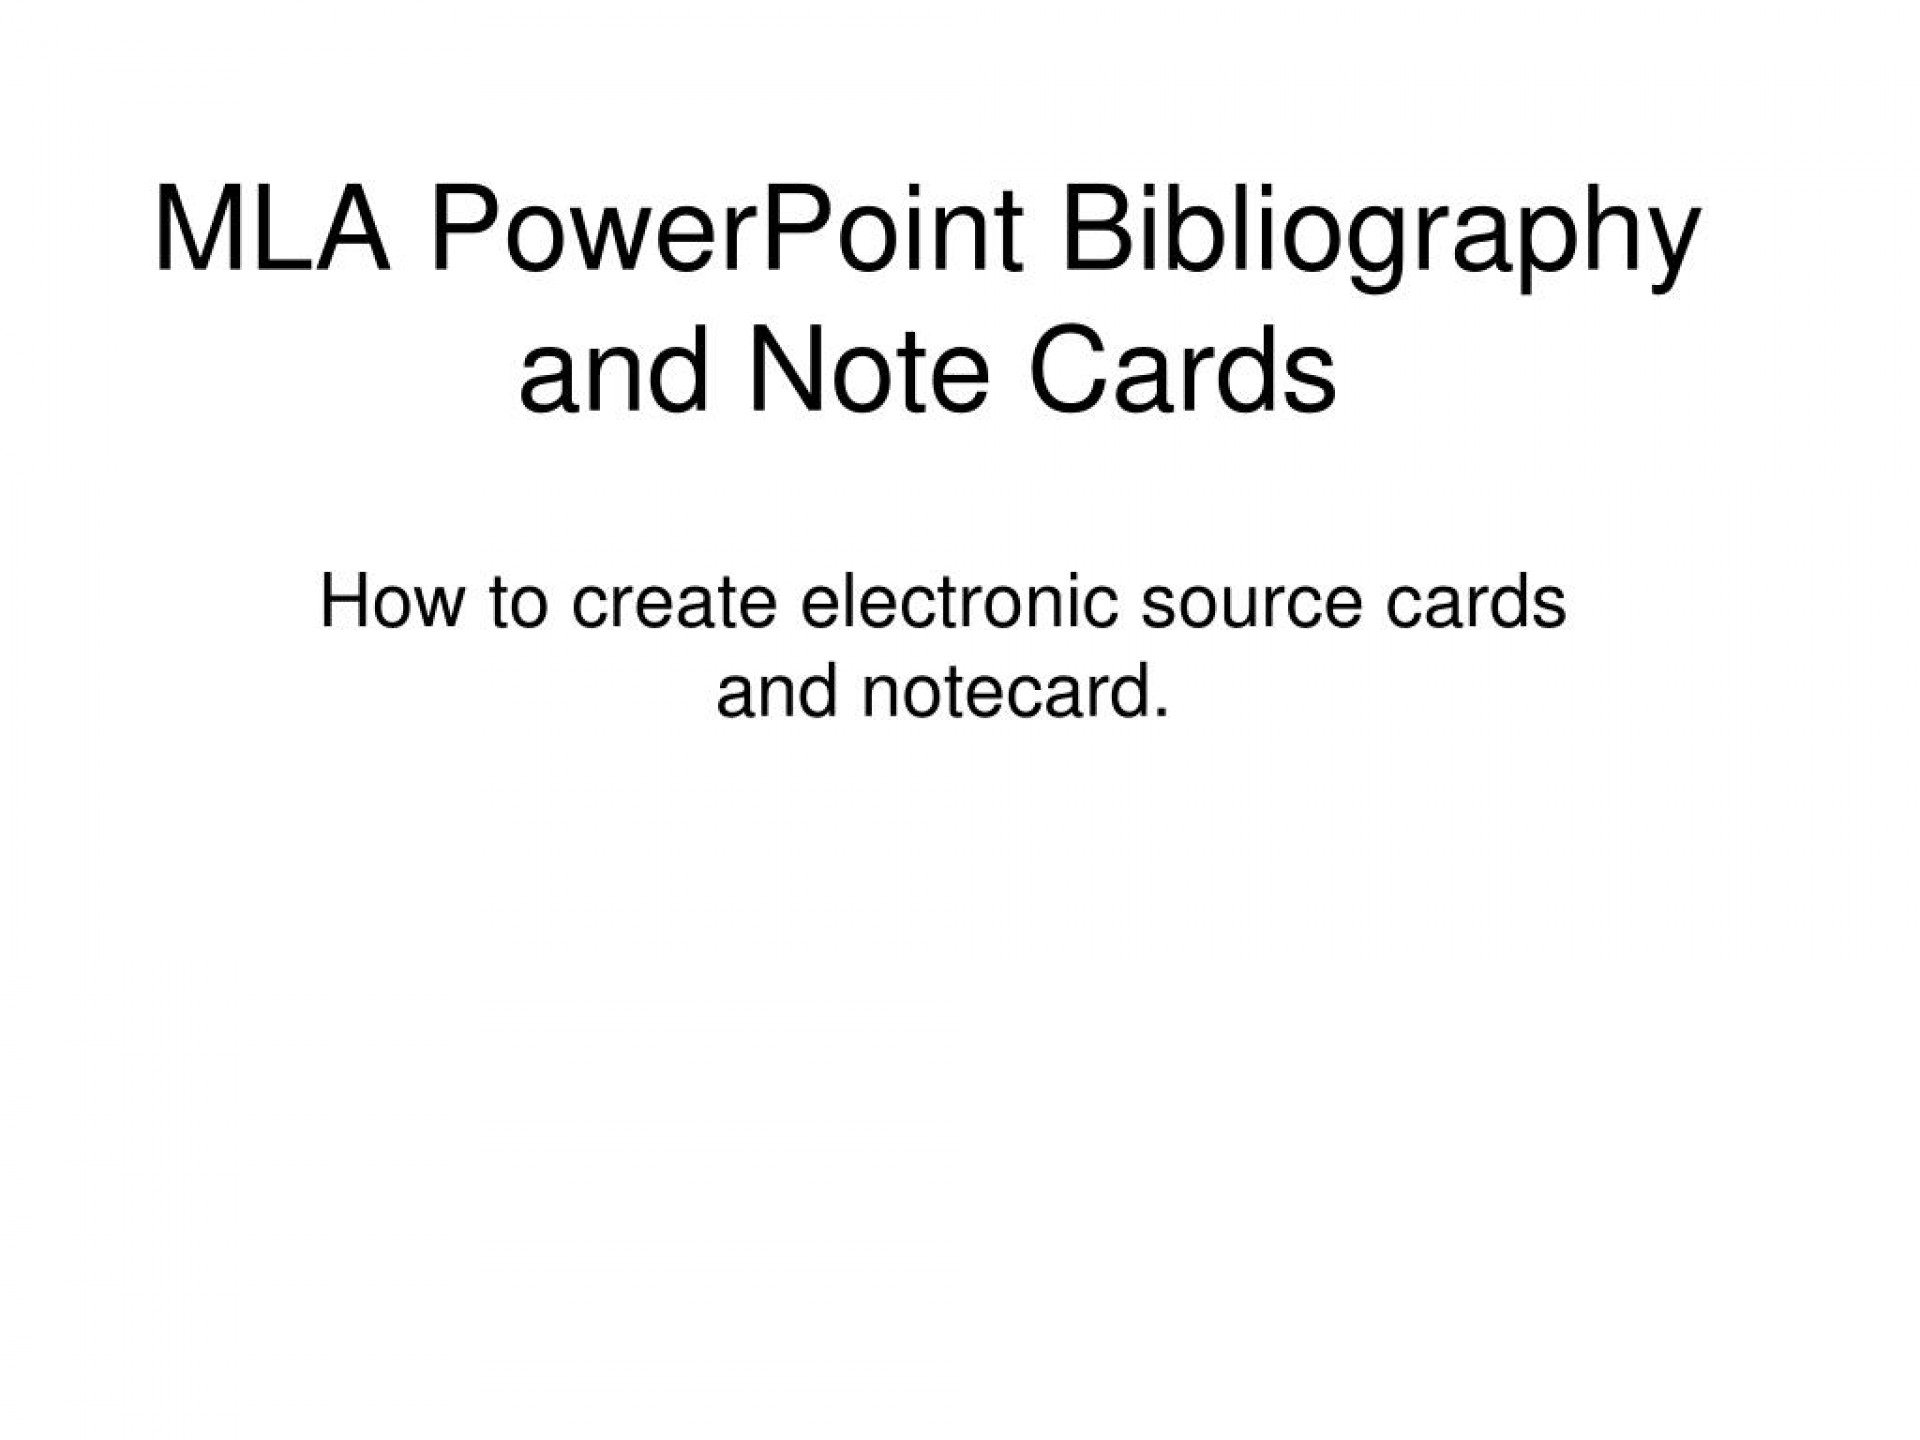 015 Research Paper Example Of Notecards For Mla Powerpoint Bibliography And Note Cards Fascinating How To Write A Writing 1920